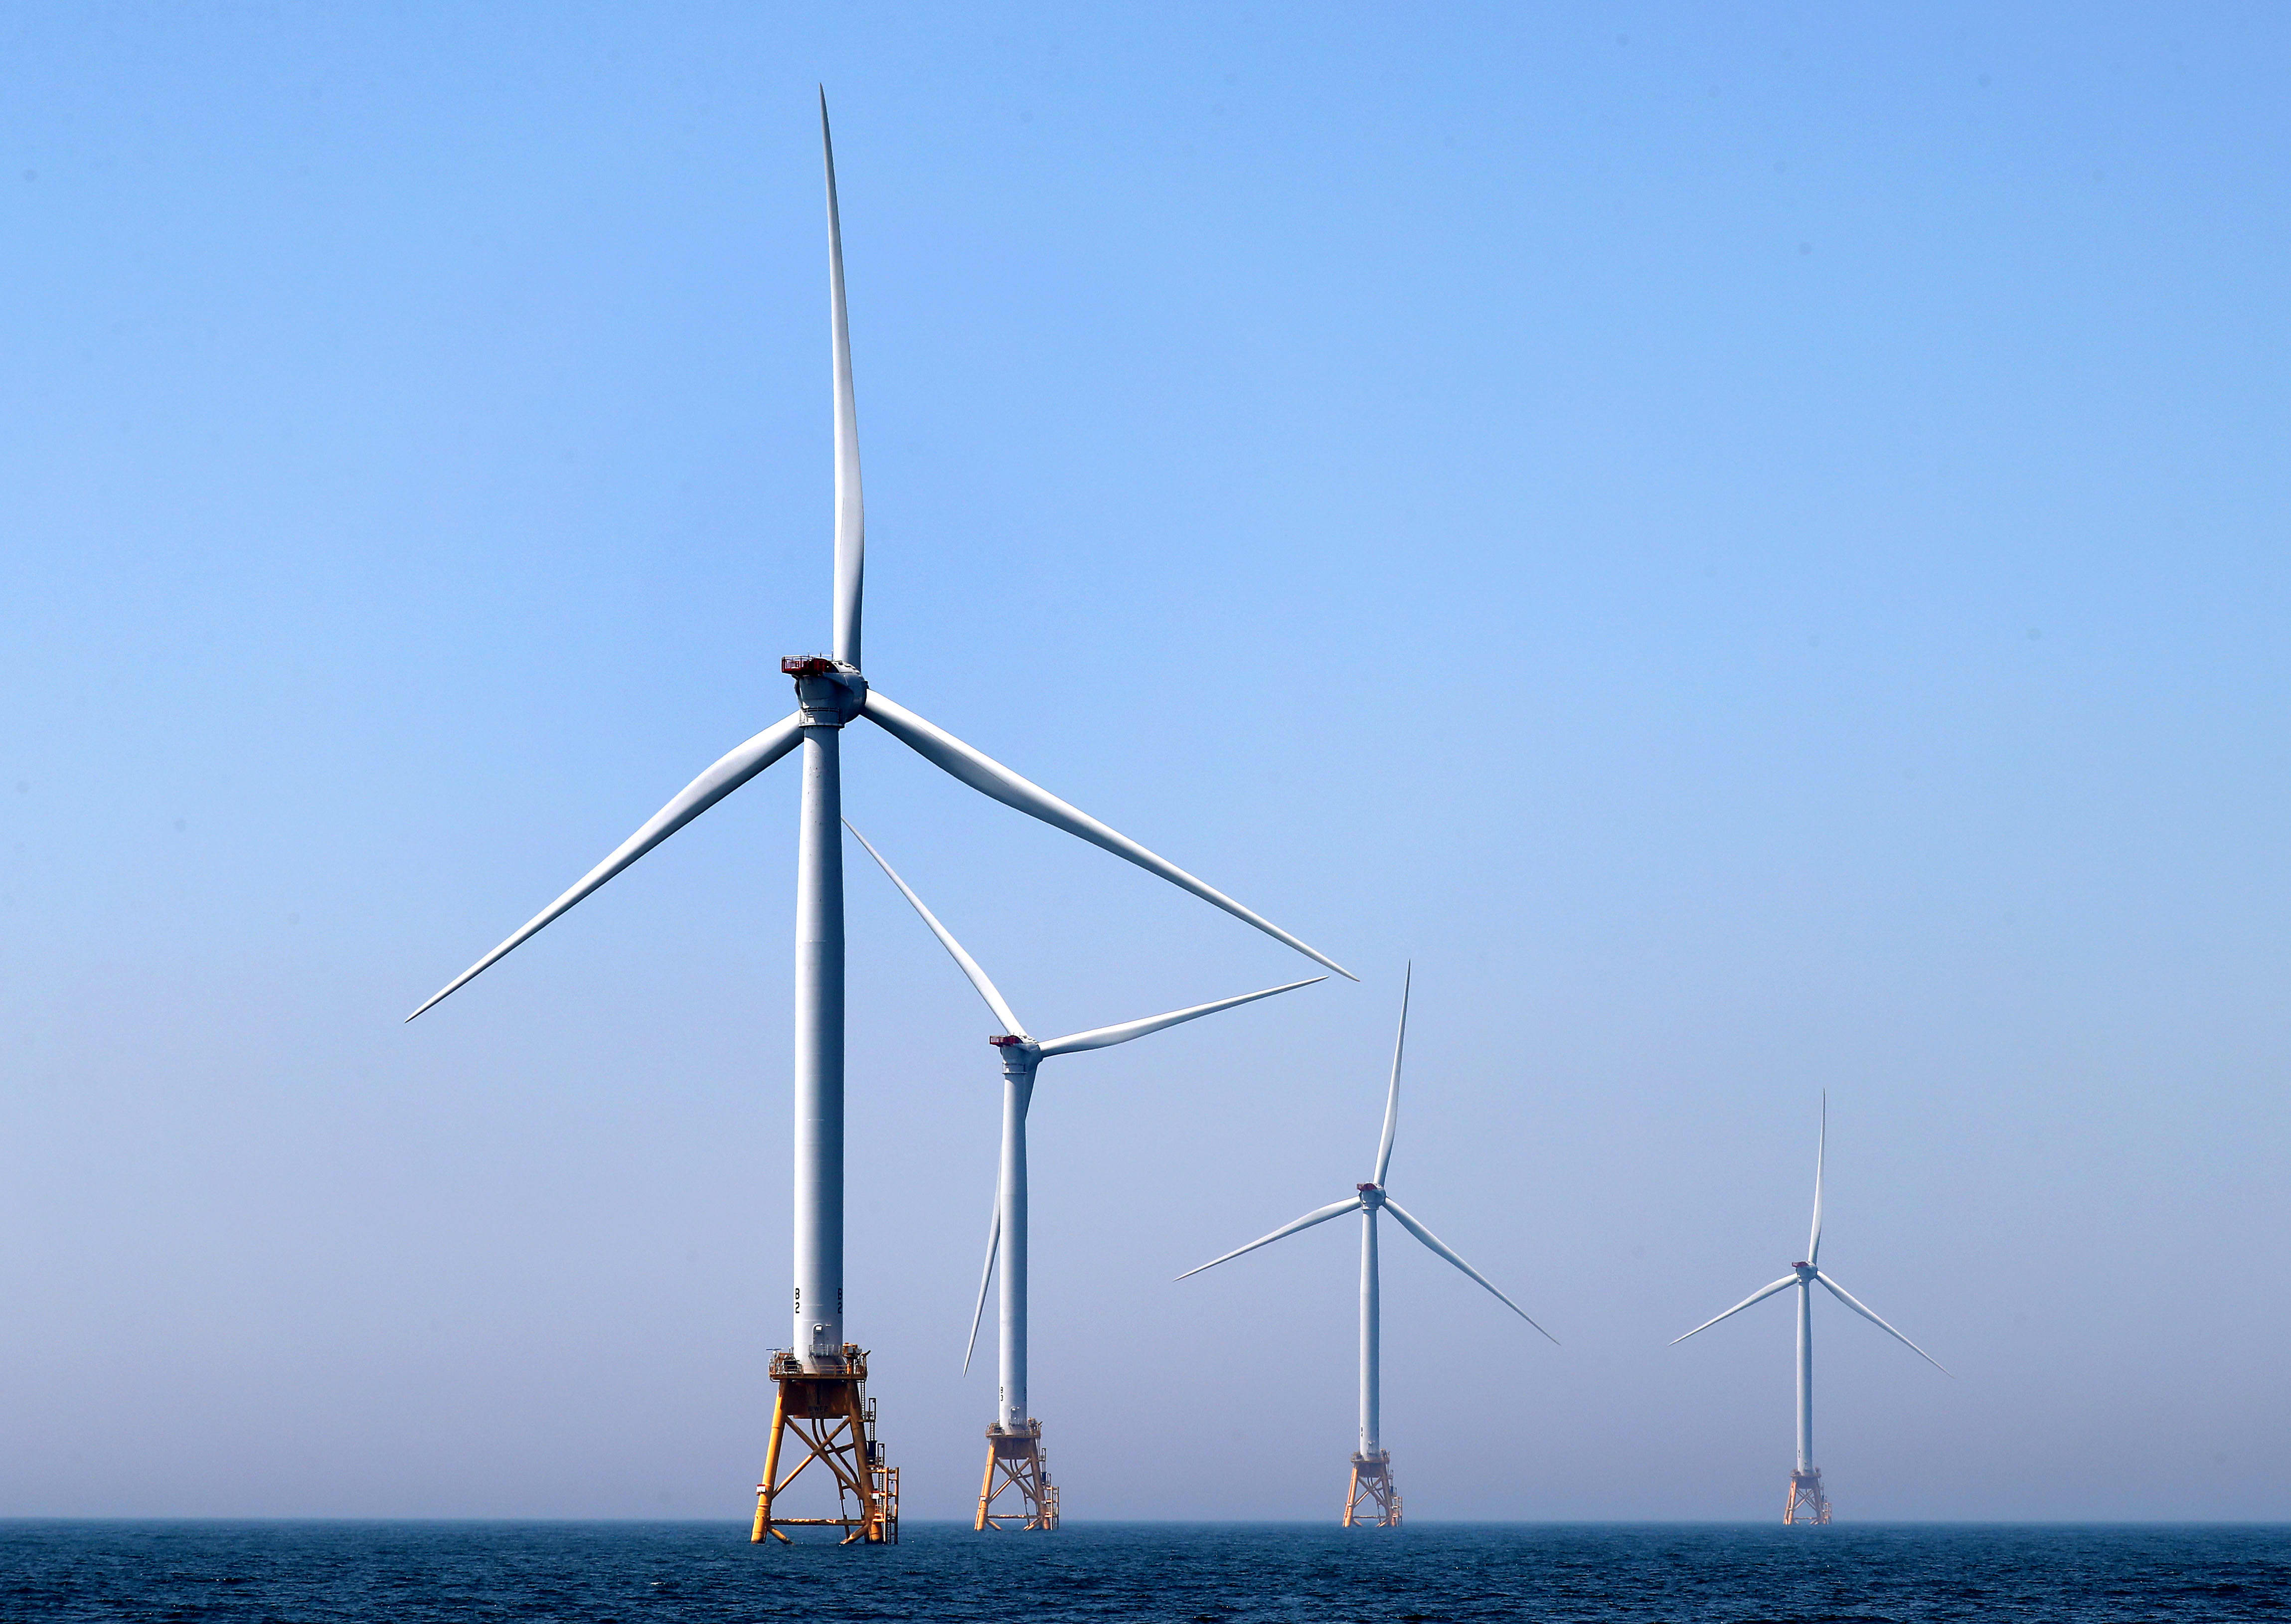 New Jersey ramps up targets as it looks to go big on offshore wind energy